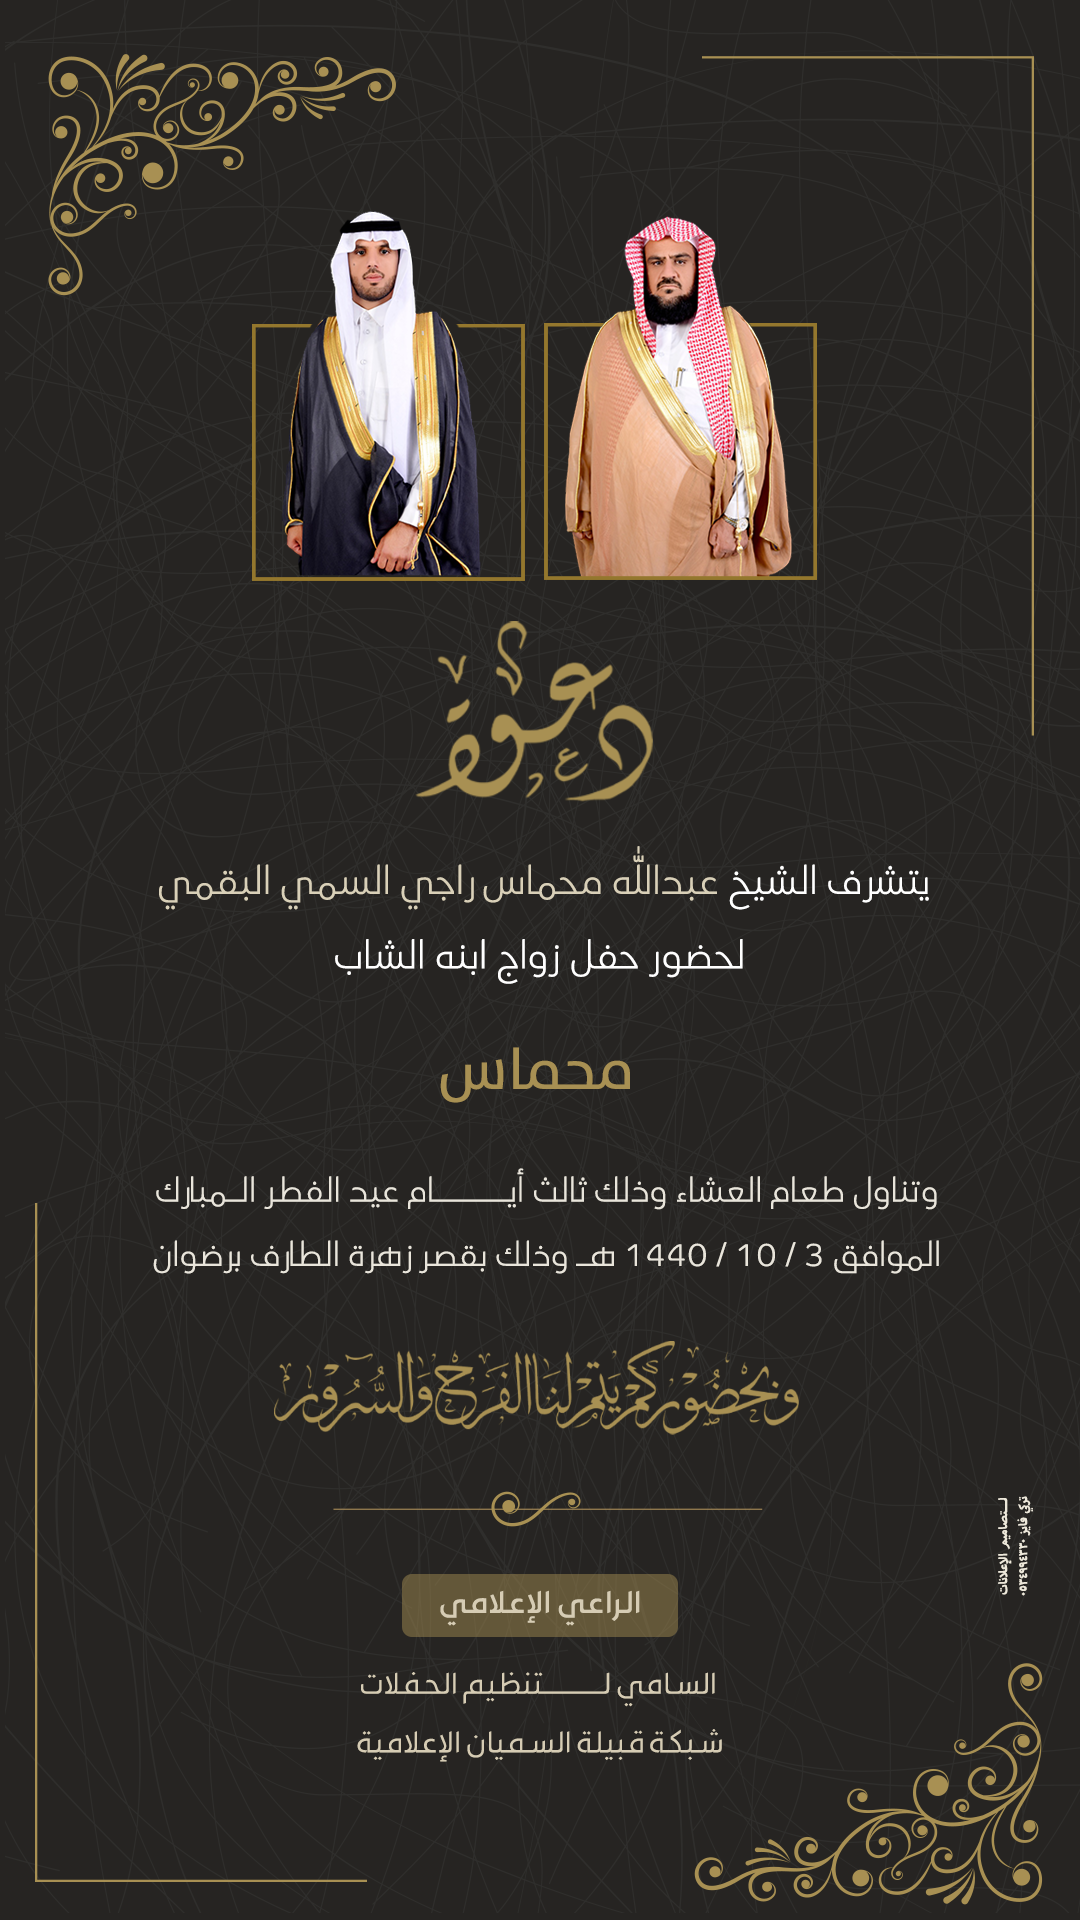 دعوة زواج Wedding Logo Design Free Business Card Design Wedding Invitation Background